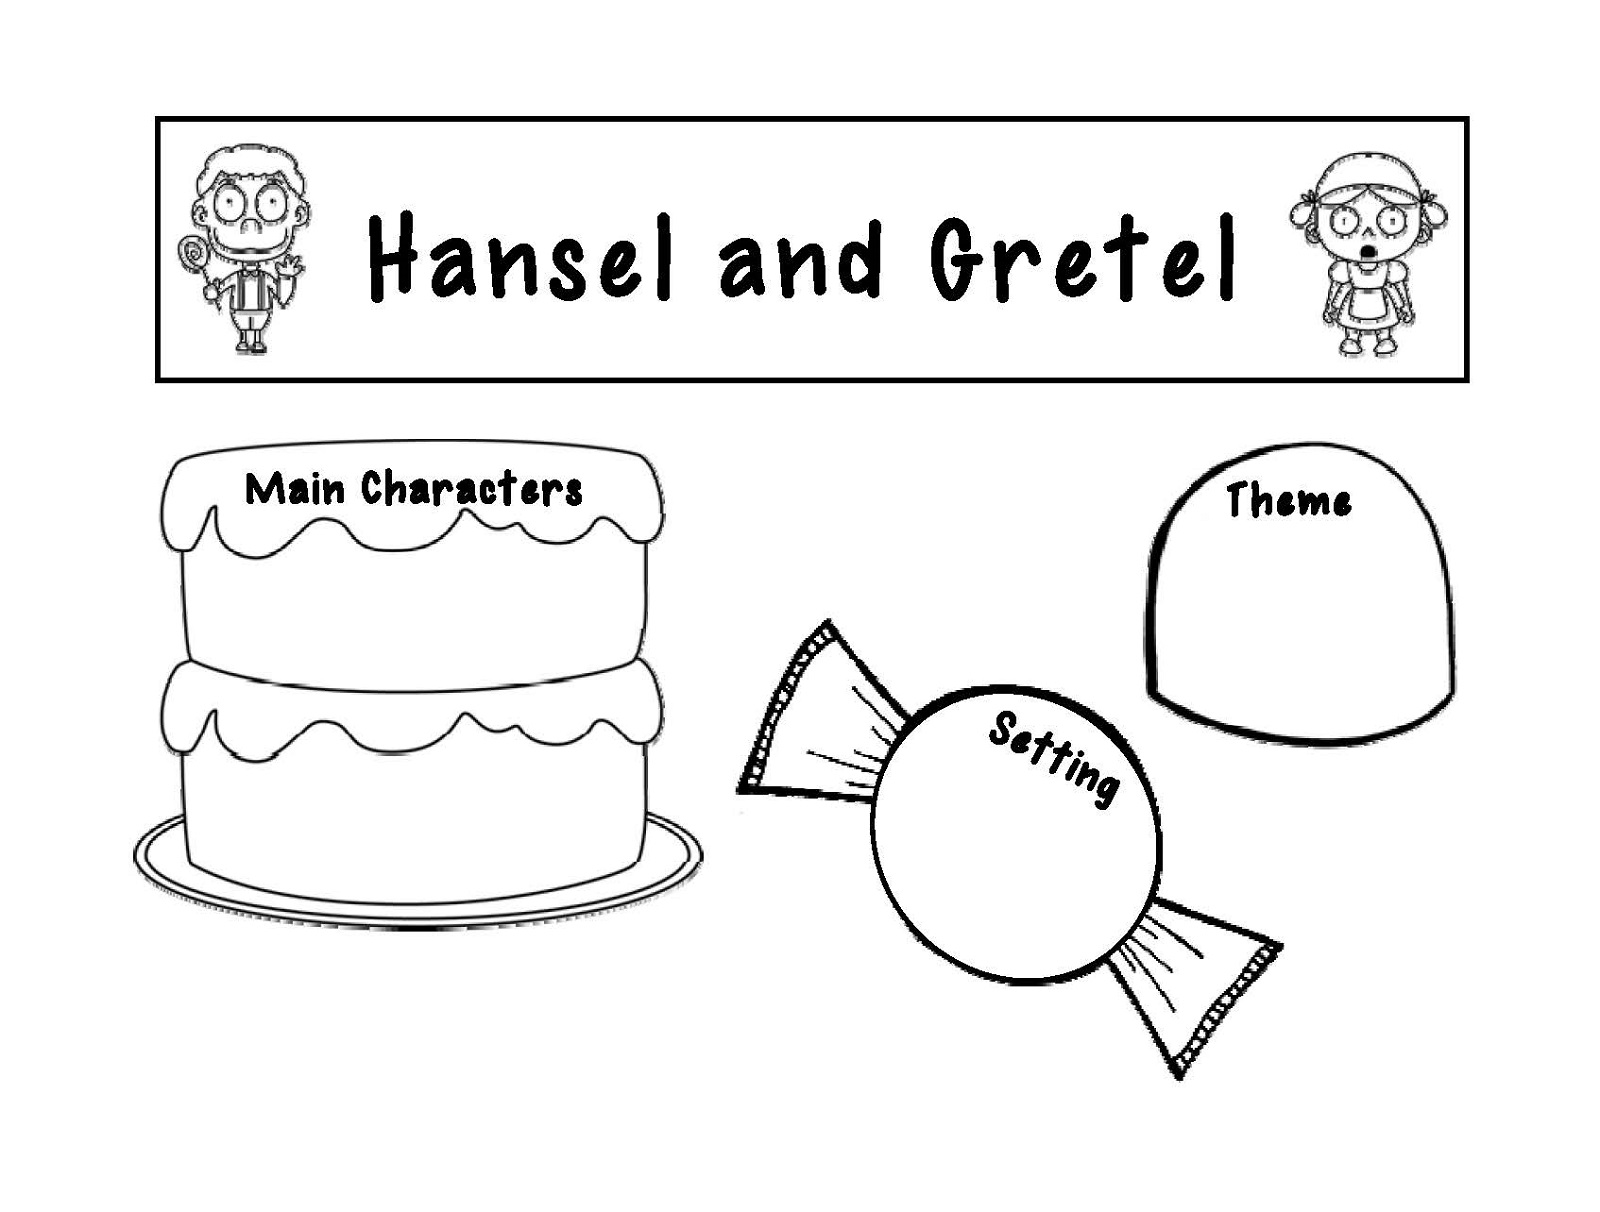 hansel-and-gretel-worksheets-fun.